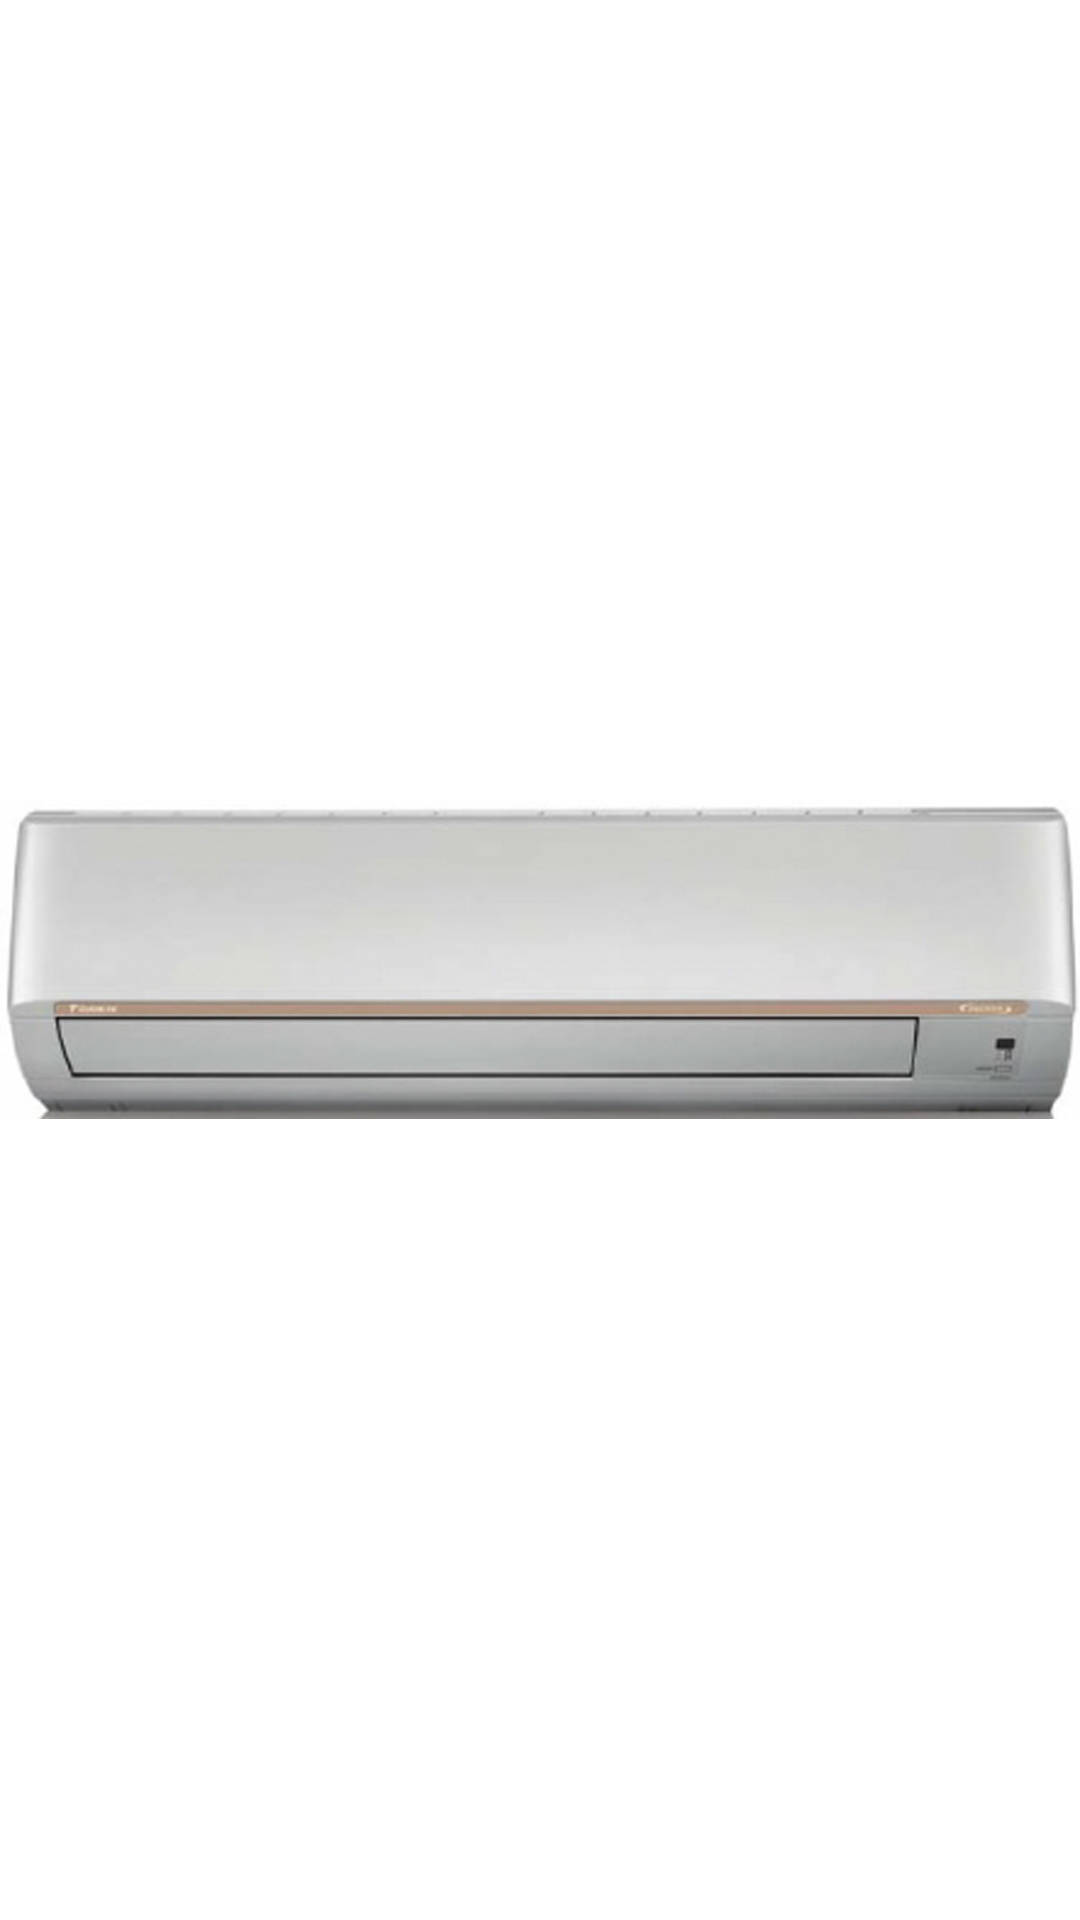 #786253 DAIKIN SPLIT AC 0.75 TON Photos Images And Wallpapers  Highly Rated 2179 Daikin 2 Ton Ac wallpapers with 1080x1920 px on helpvideos.info - Air Conditioners, Air Coolers and more